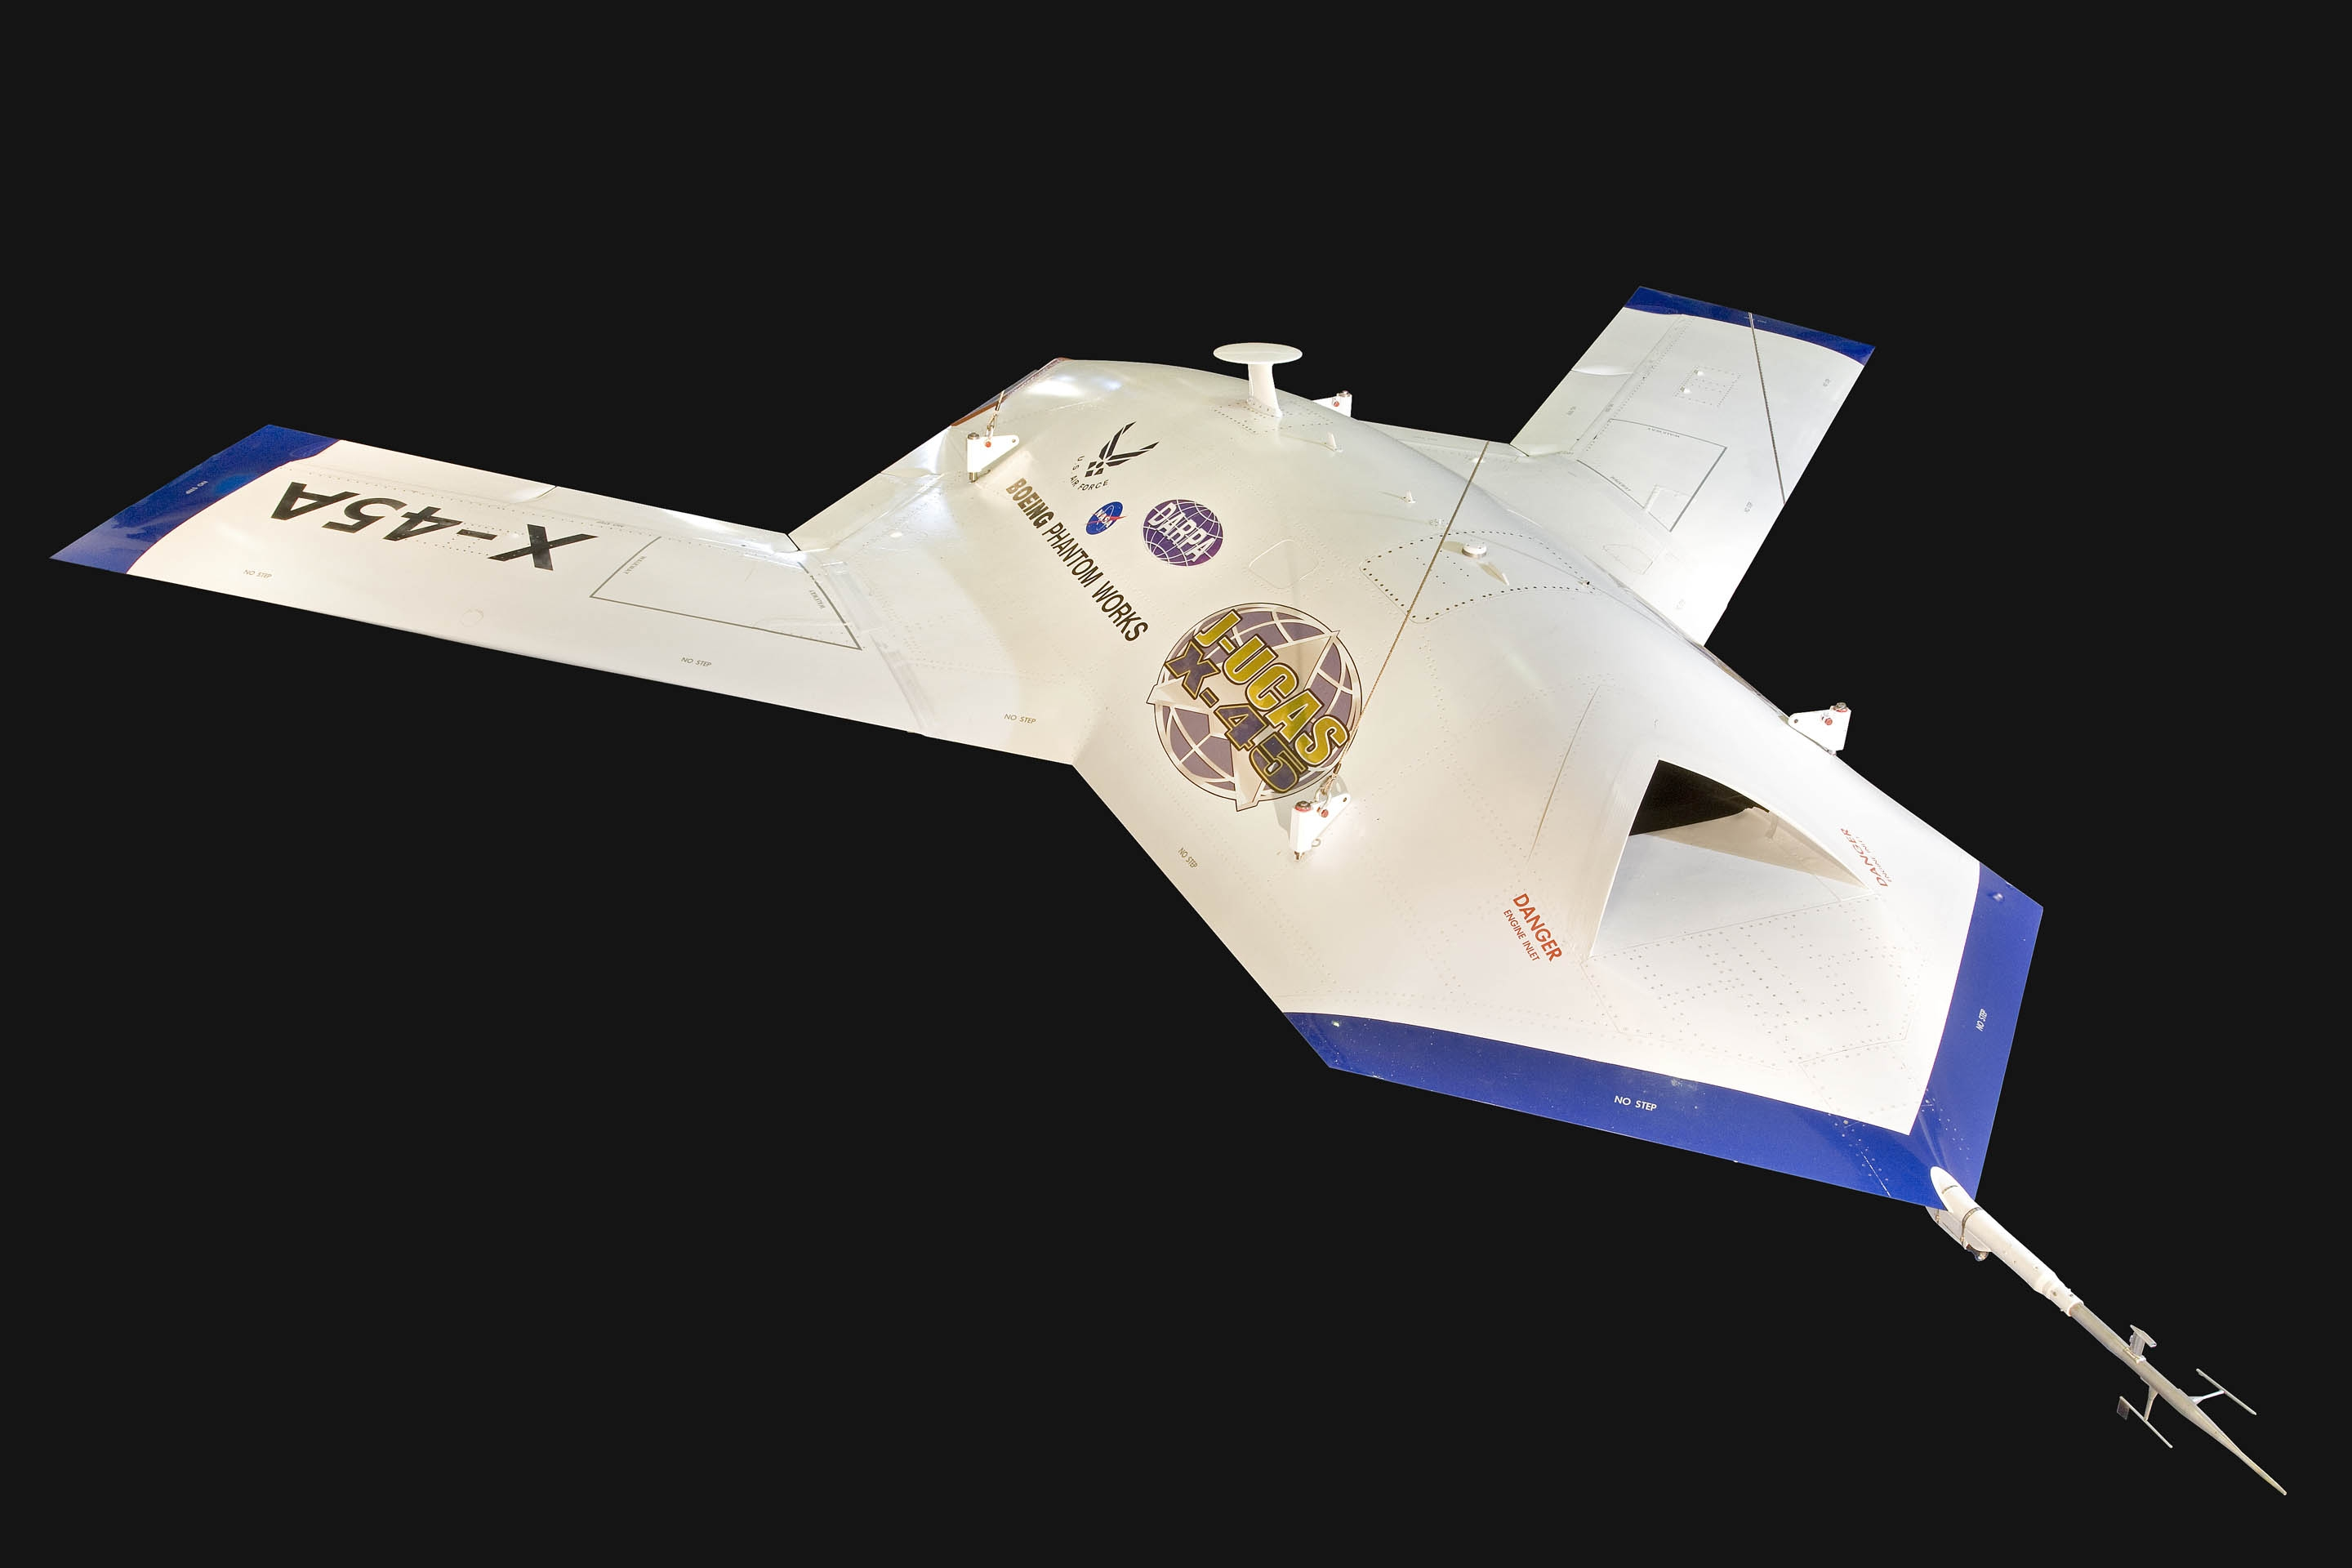 Boeing X-45A in the Military Unmanned Aerial Vehicles (UAV)